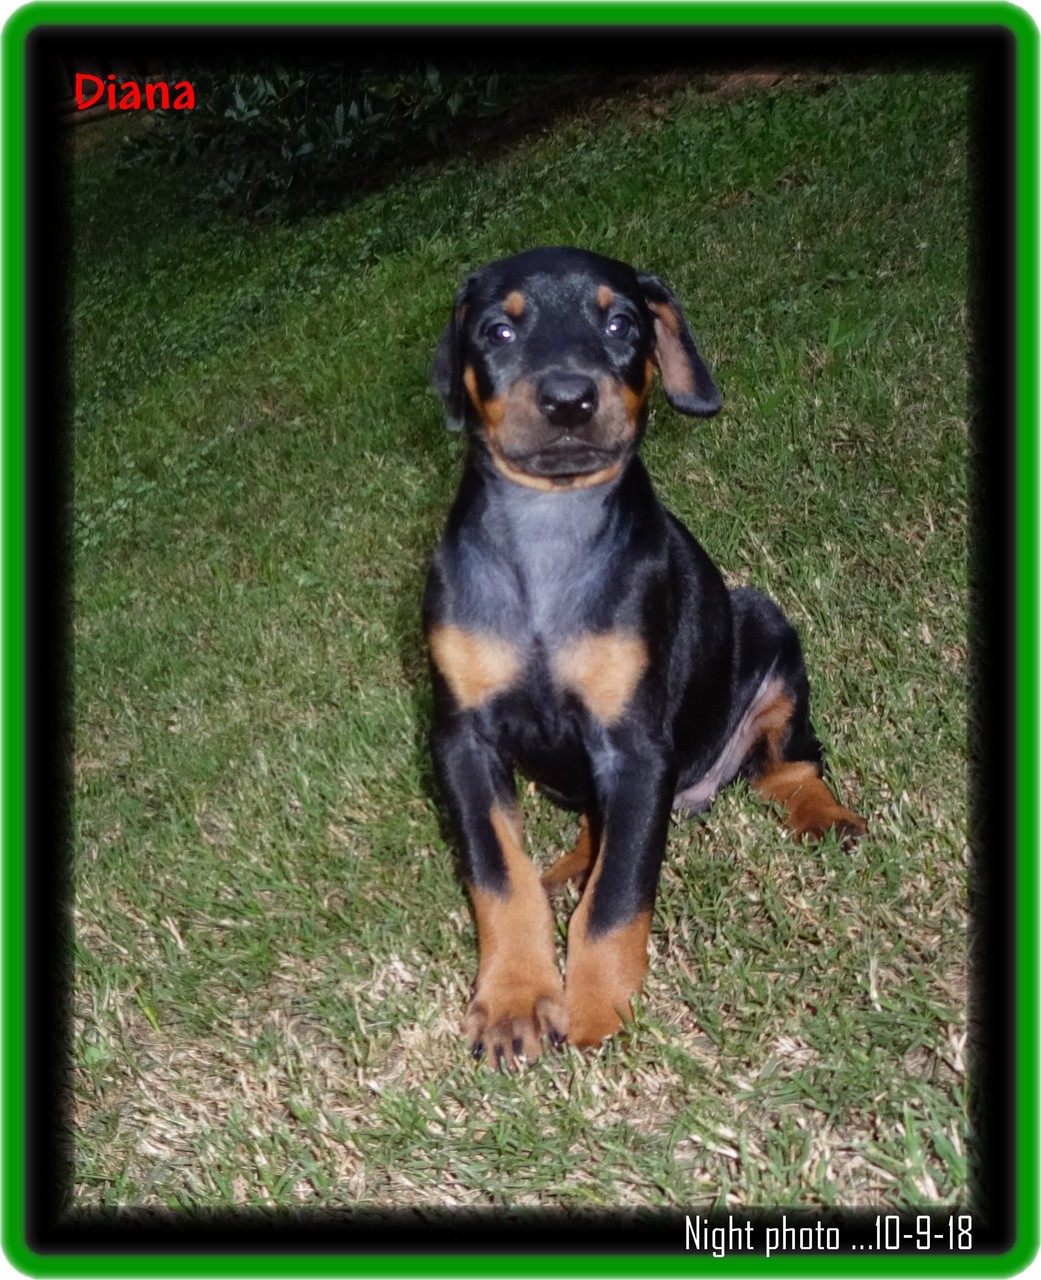 Brandy ... Zoey & Max pup / finished her training - established clients drove inn from  Dallas.